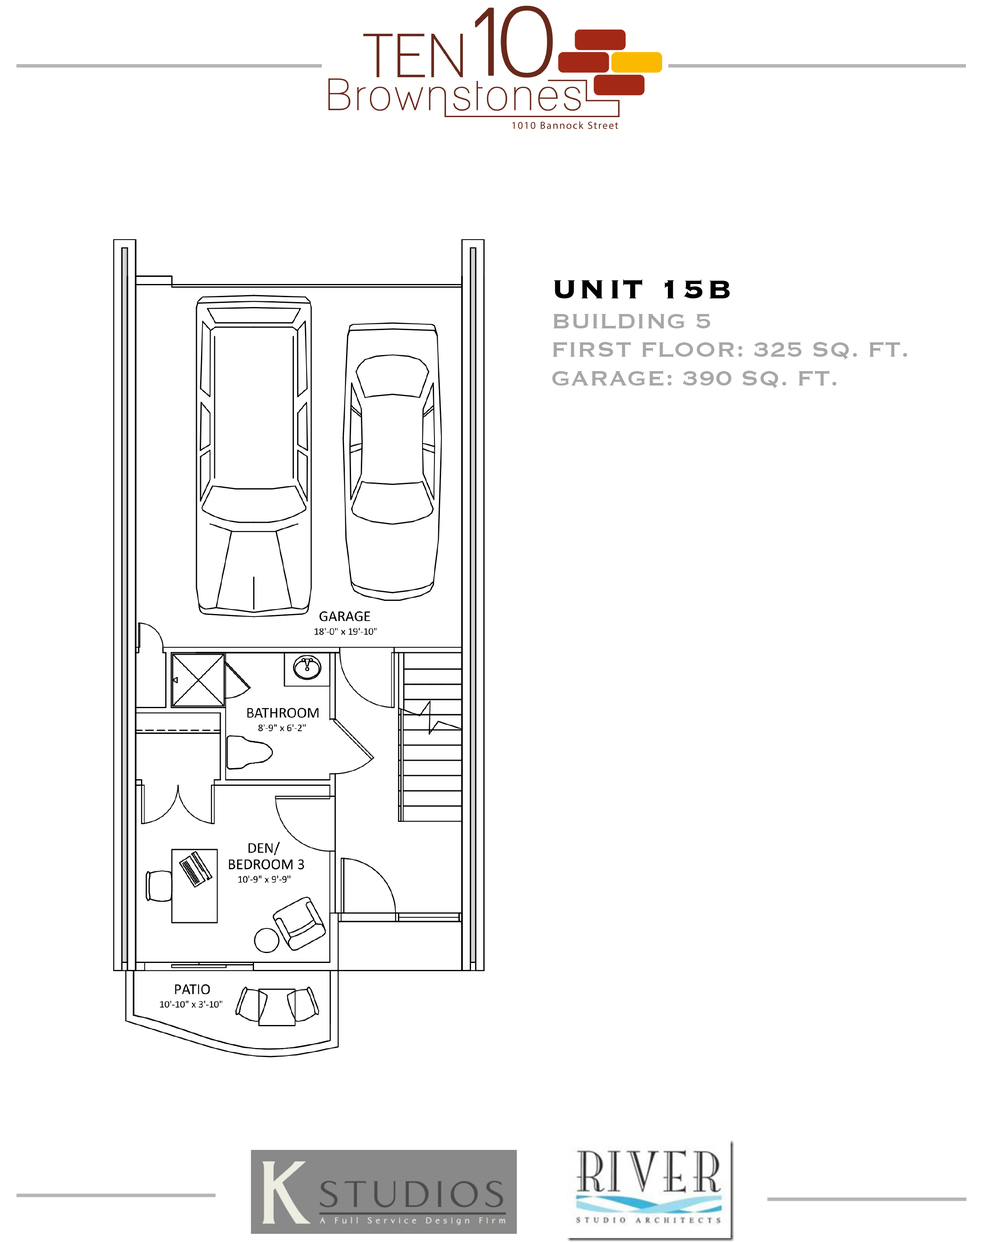 Click image to view & download Unit 15B floor plan